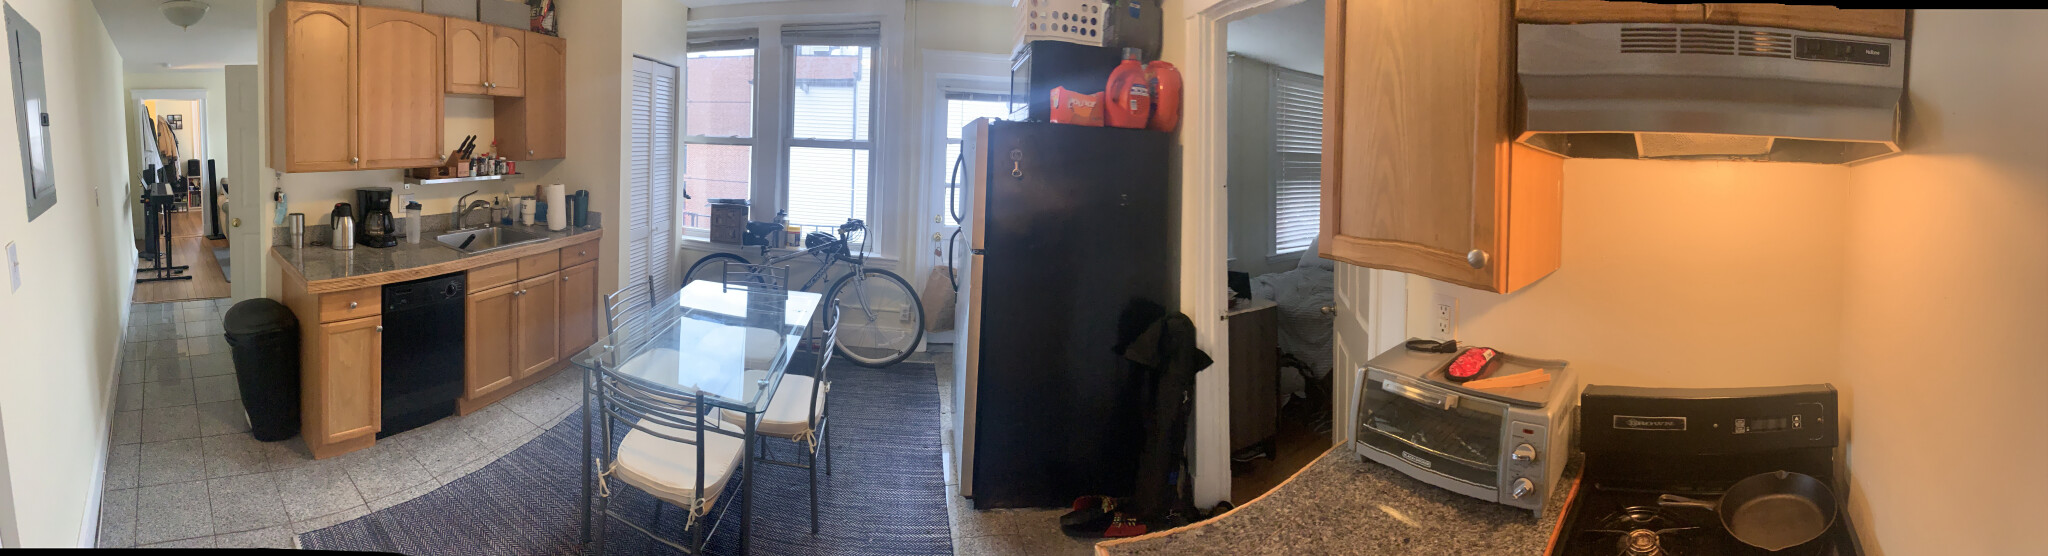 2 Bd on Hanover St., Include Heat, Avail 09/01, Laundry in Building